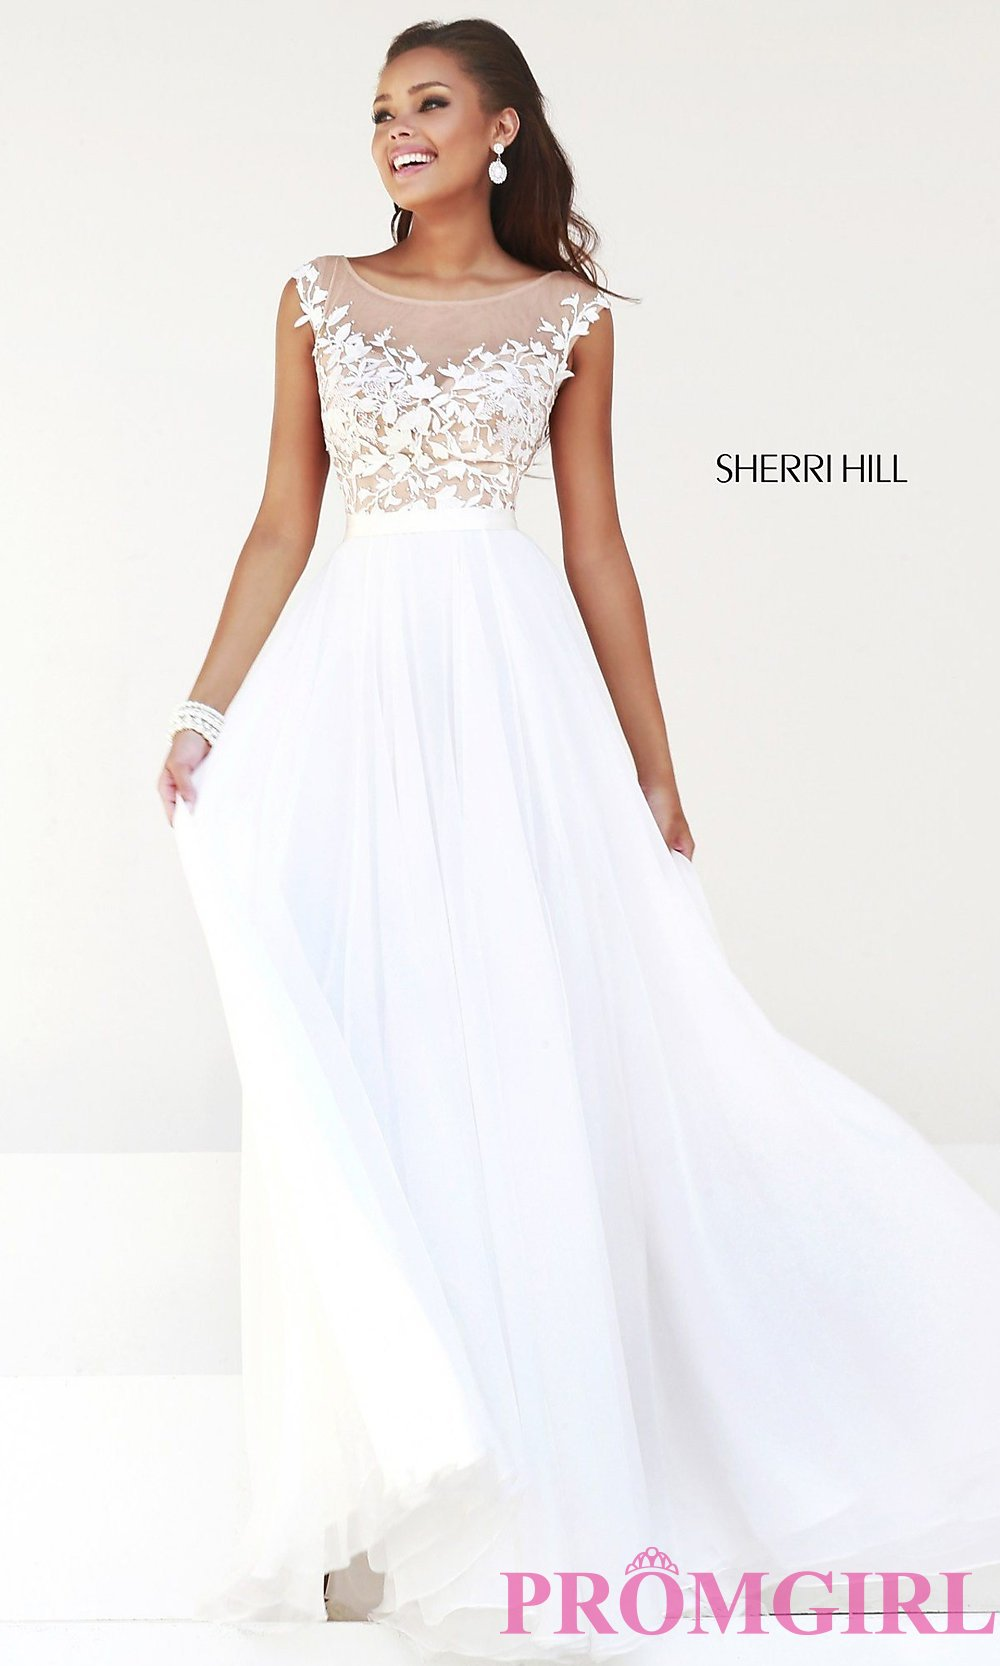 Sherri hill designer evening gown